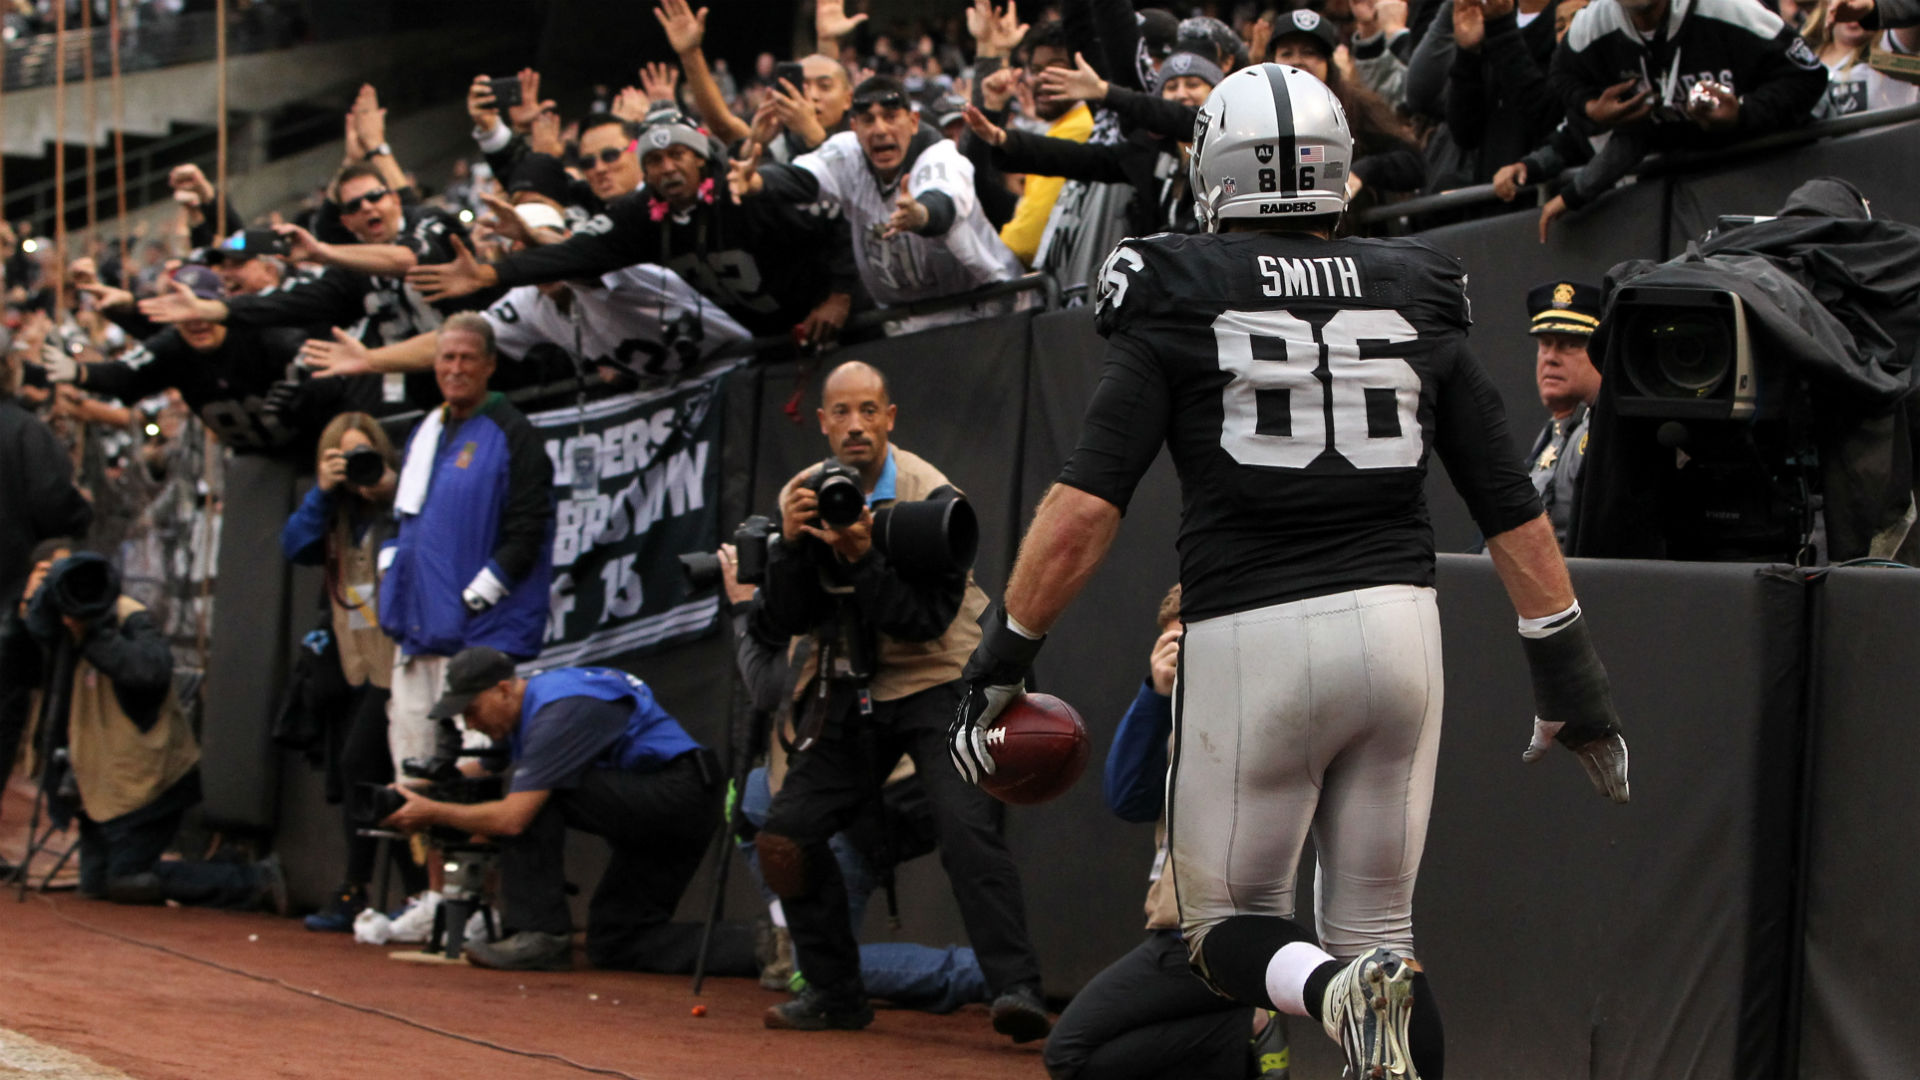 Raiders player tells ref he was 'just kidding around' after personal foul penalty